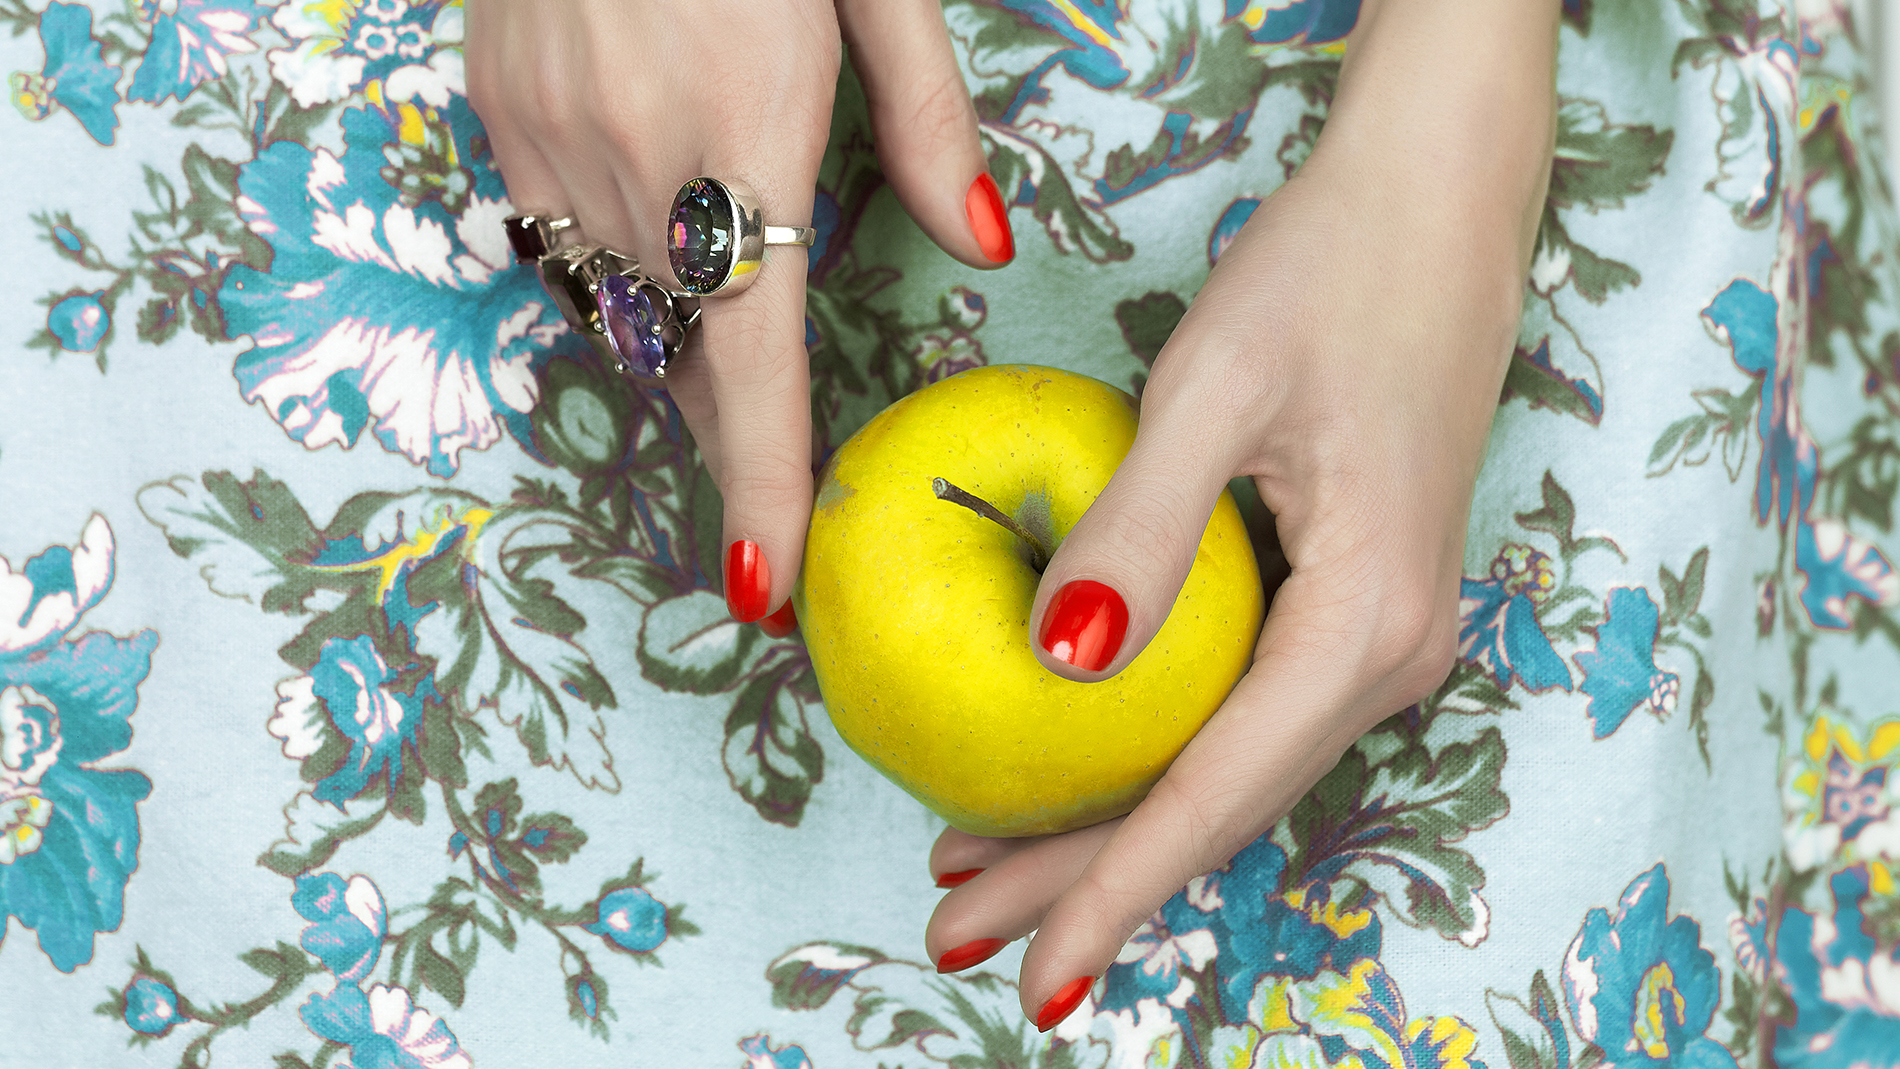 Eat Your Way To Strong, Healthy Nails